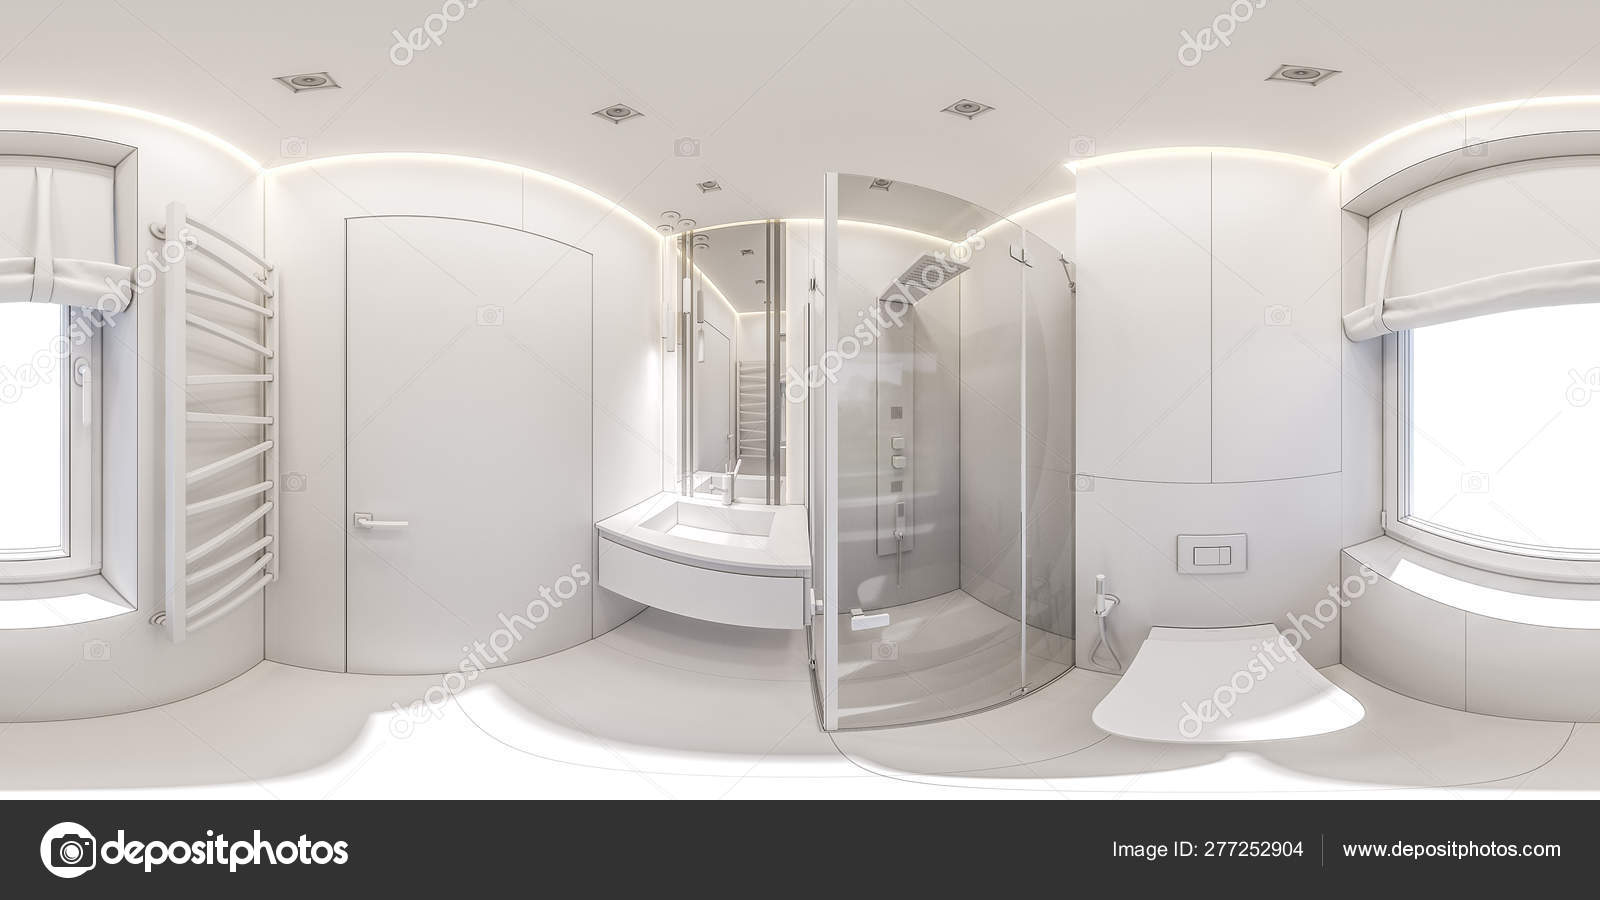 3d Illustration Of A Bathroom In A Private Cottage 360 Degree Seamless Interior Panorama Stock Photo C Richman21 277252904